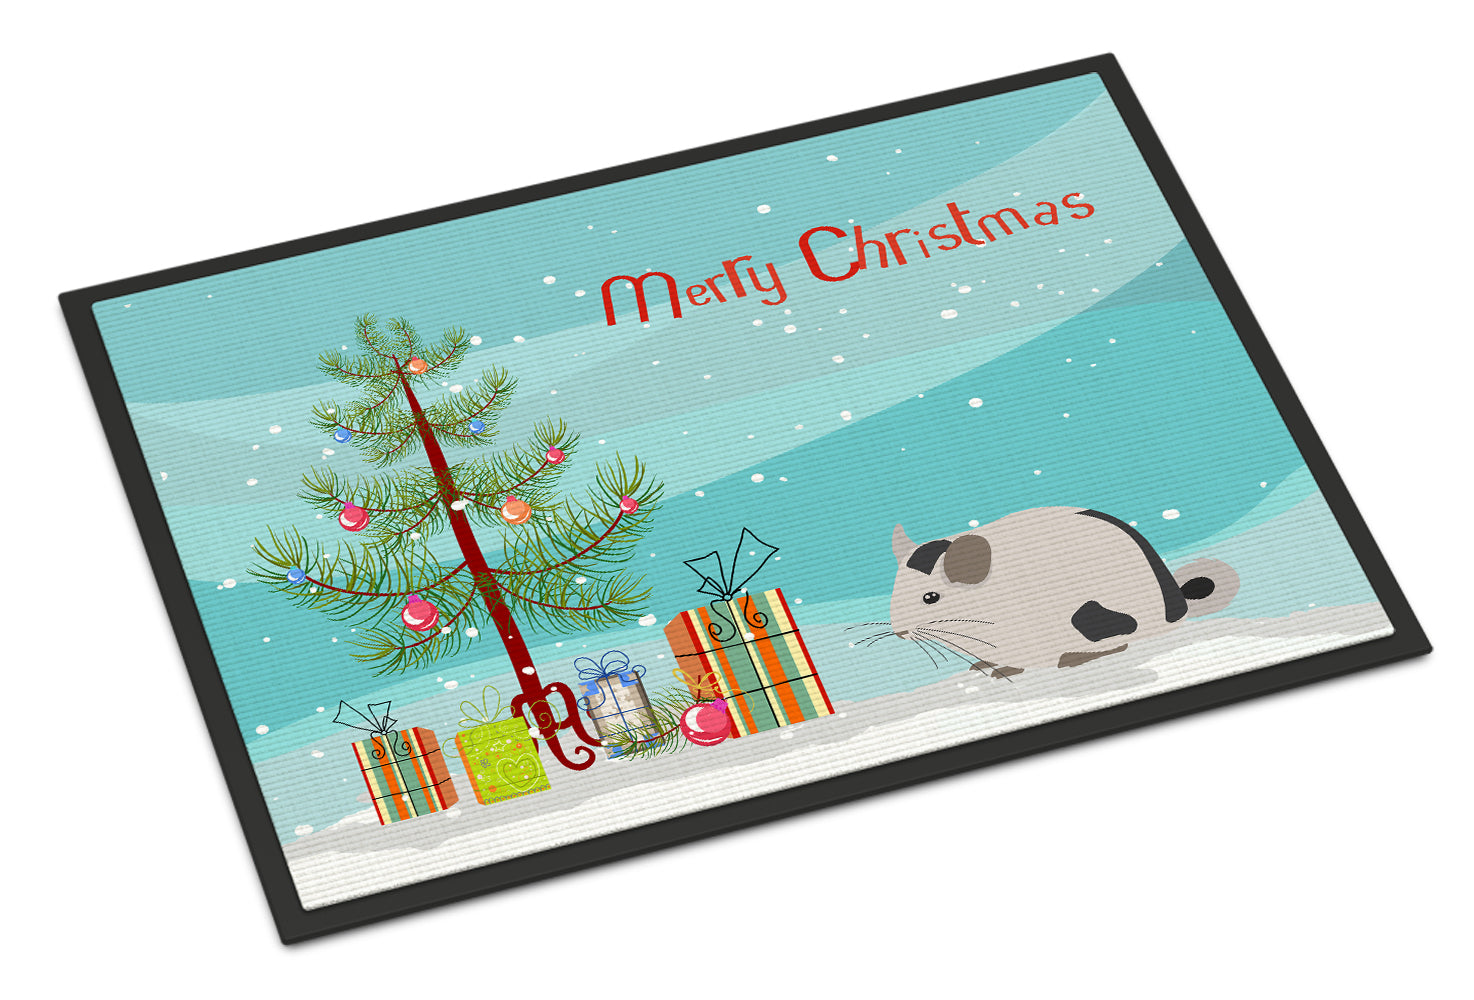 Mosaic Chinchilla Merry Christmas Indoor or Outdoor Mat 18x27 CK4435MAT by Caroline's Treasures